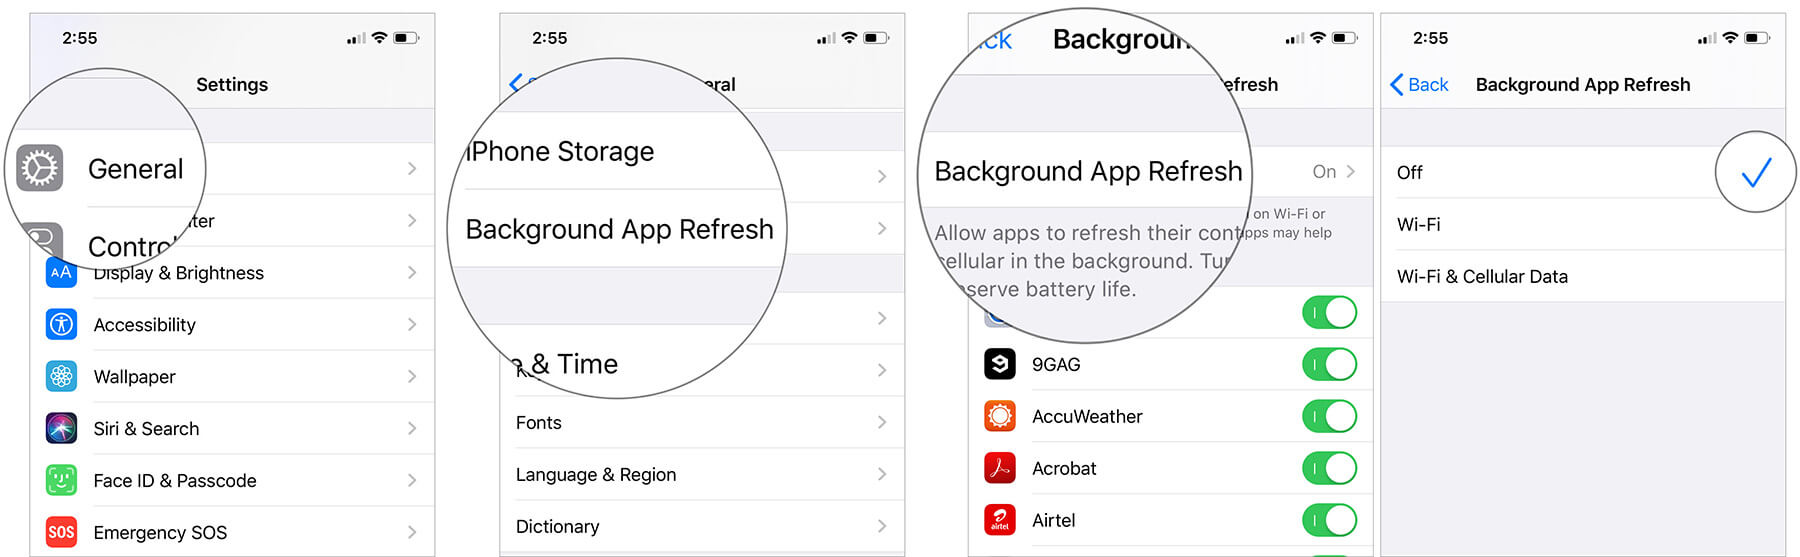 Disable Background App Refresh in iOS 13 on iPhone